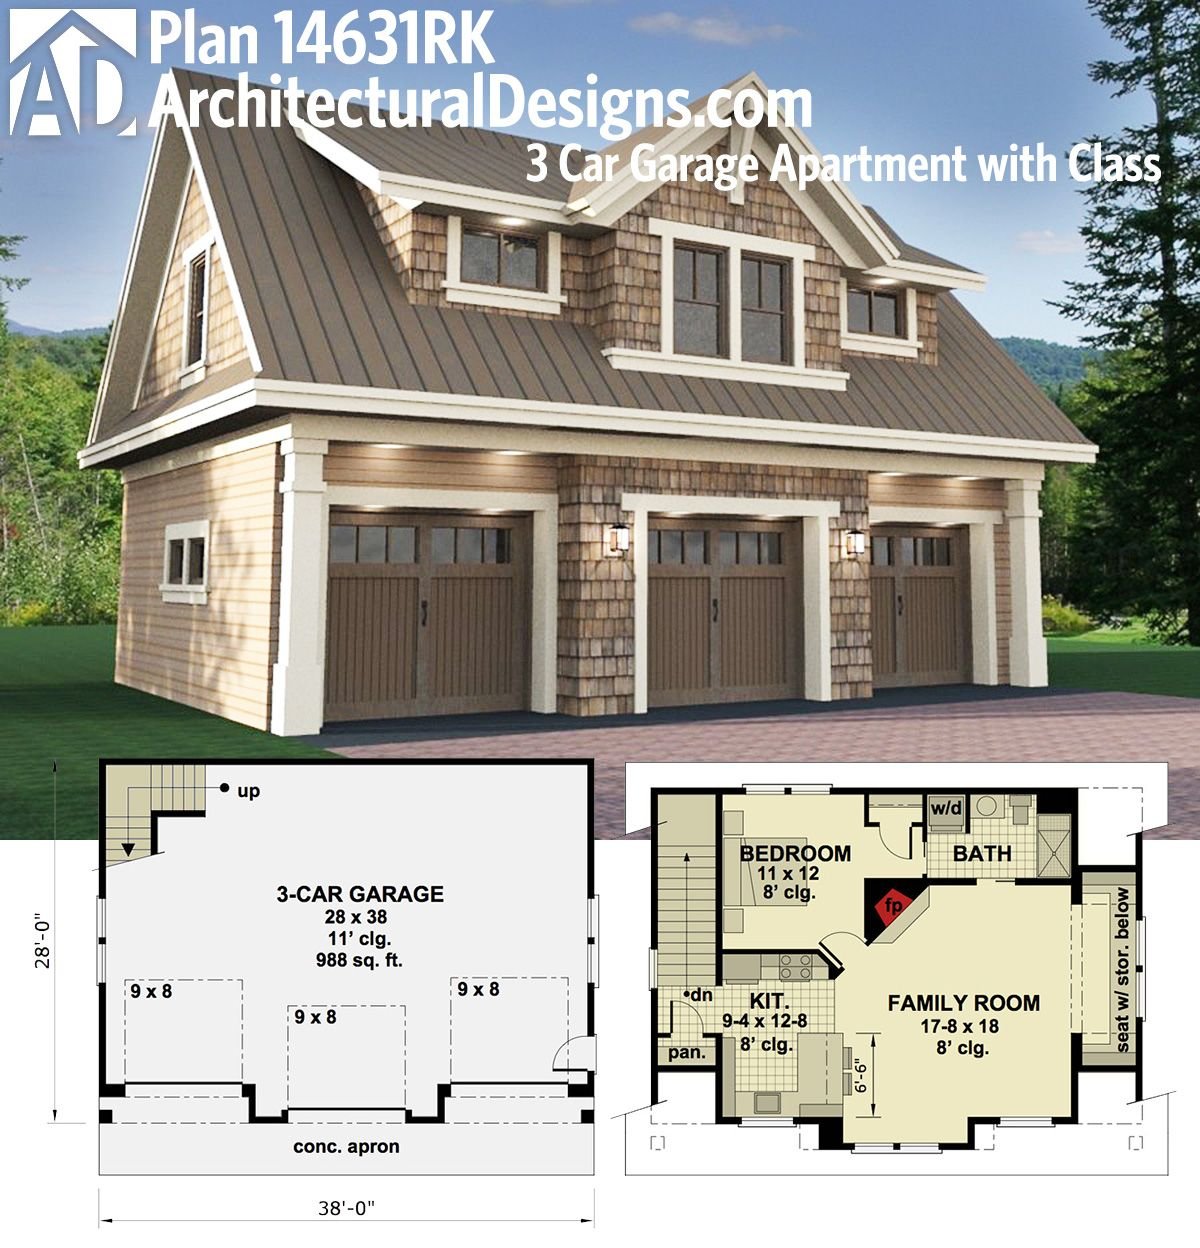 Plan 14631rk 3 car garage apartment with class for Garage built homes